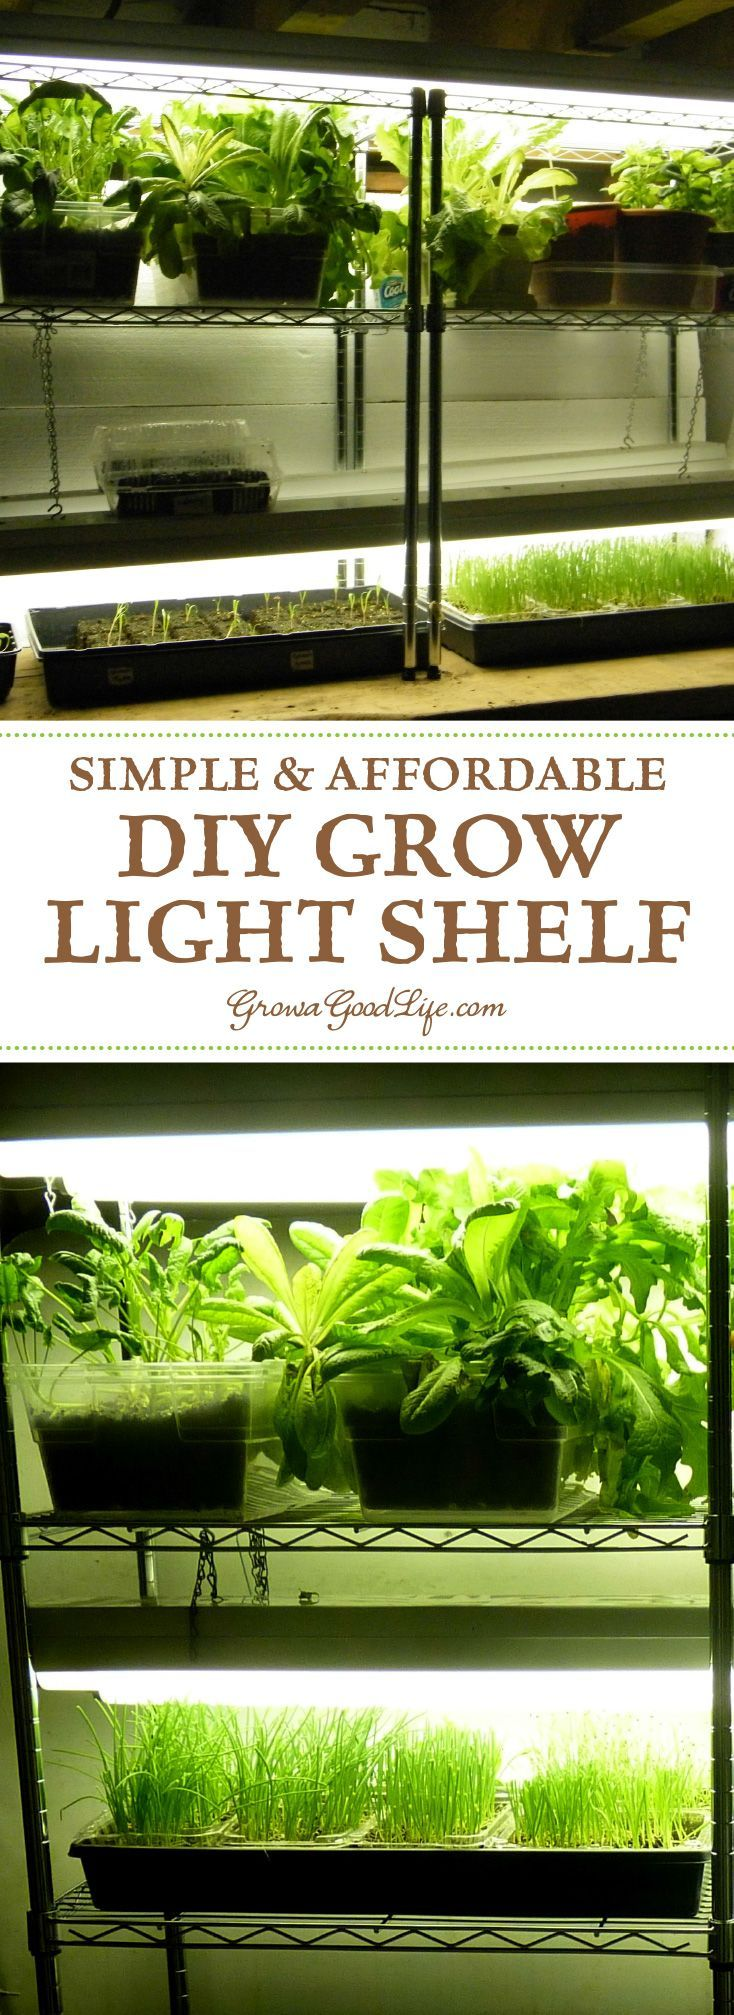 best 25+ indoor gardening ideas on pinterest | inside plants, low